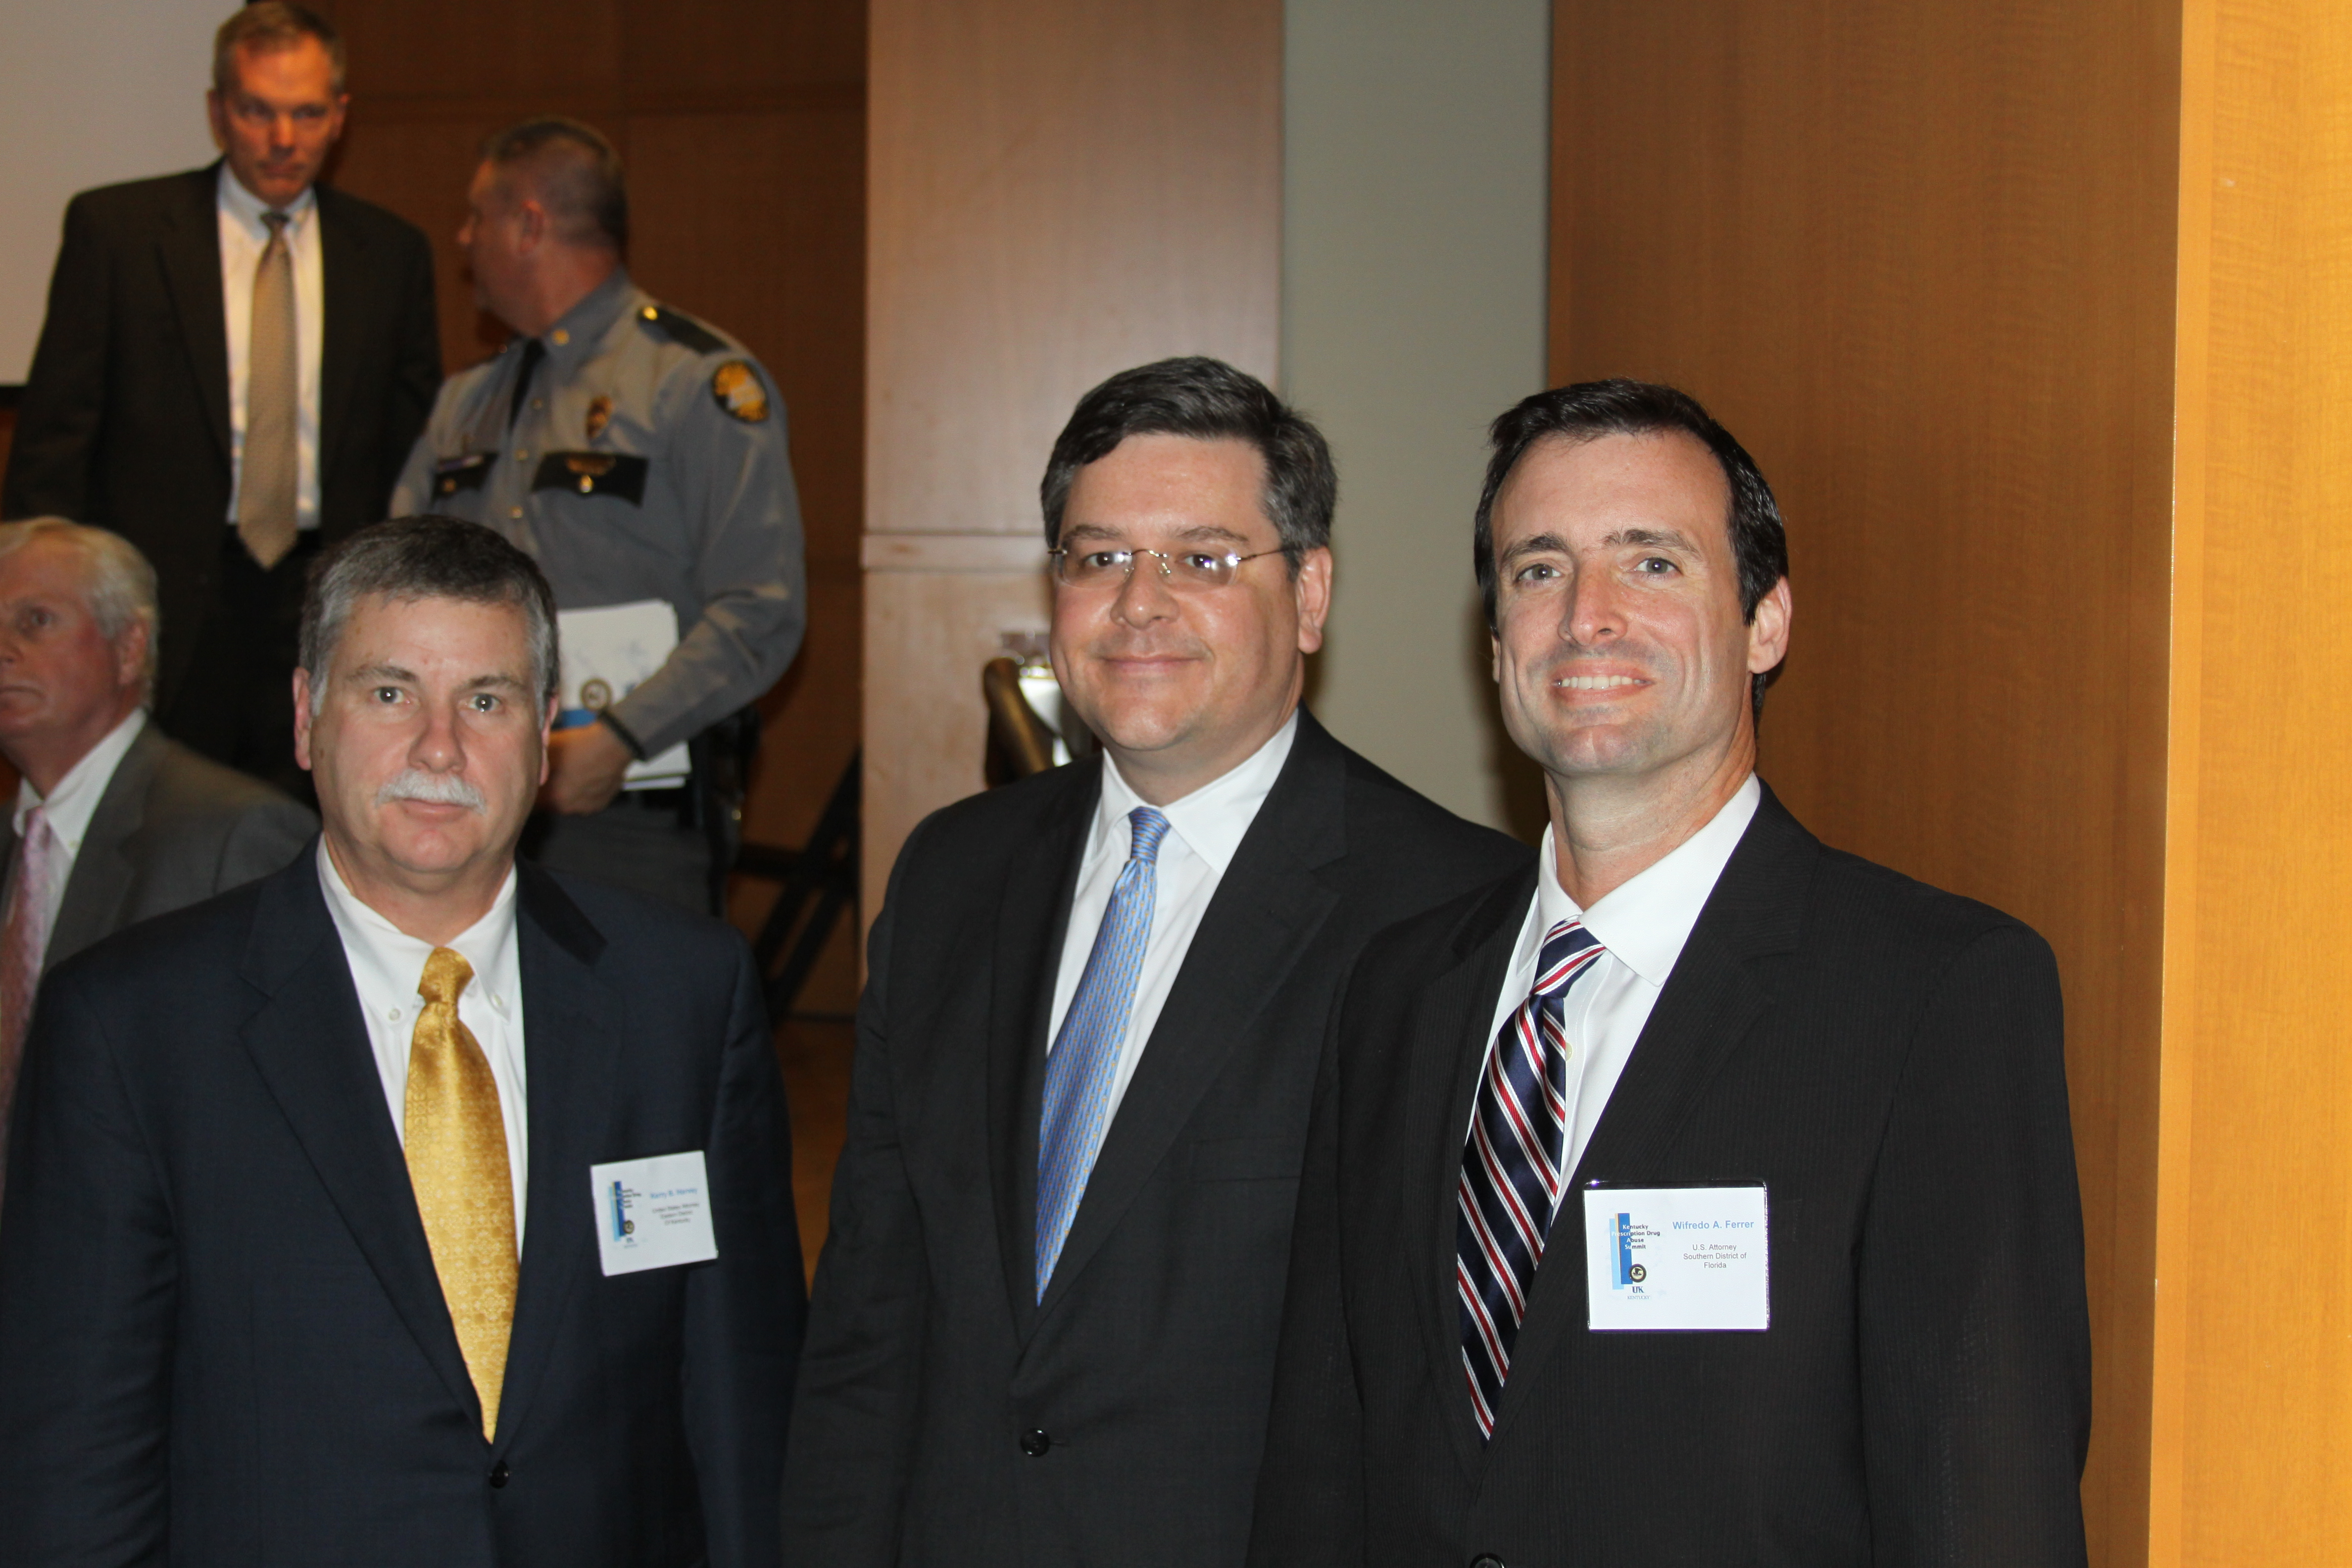 US Attorney Kerry B. Harvey, US Attorney David J. Hale, US Attorney Wifredo Ferrer - Kentucky Prescription Drug Abuse Summit